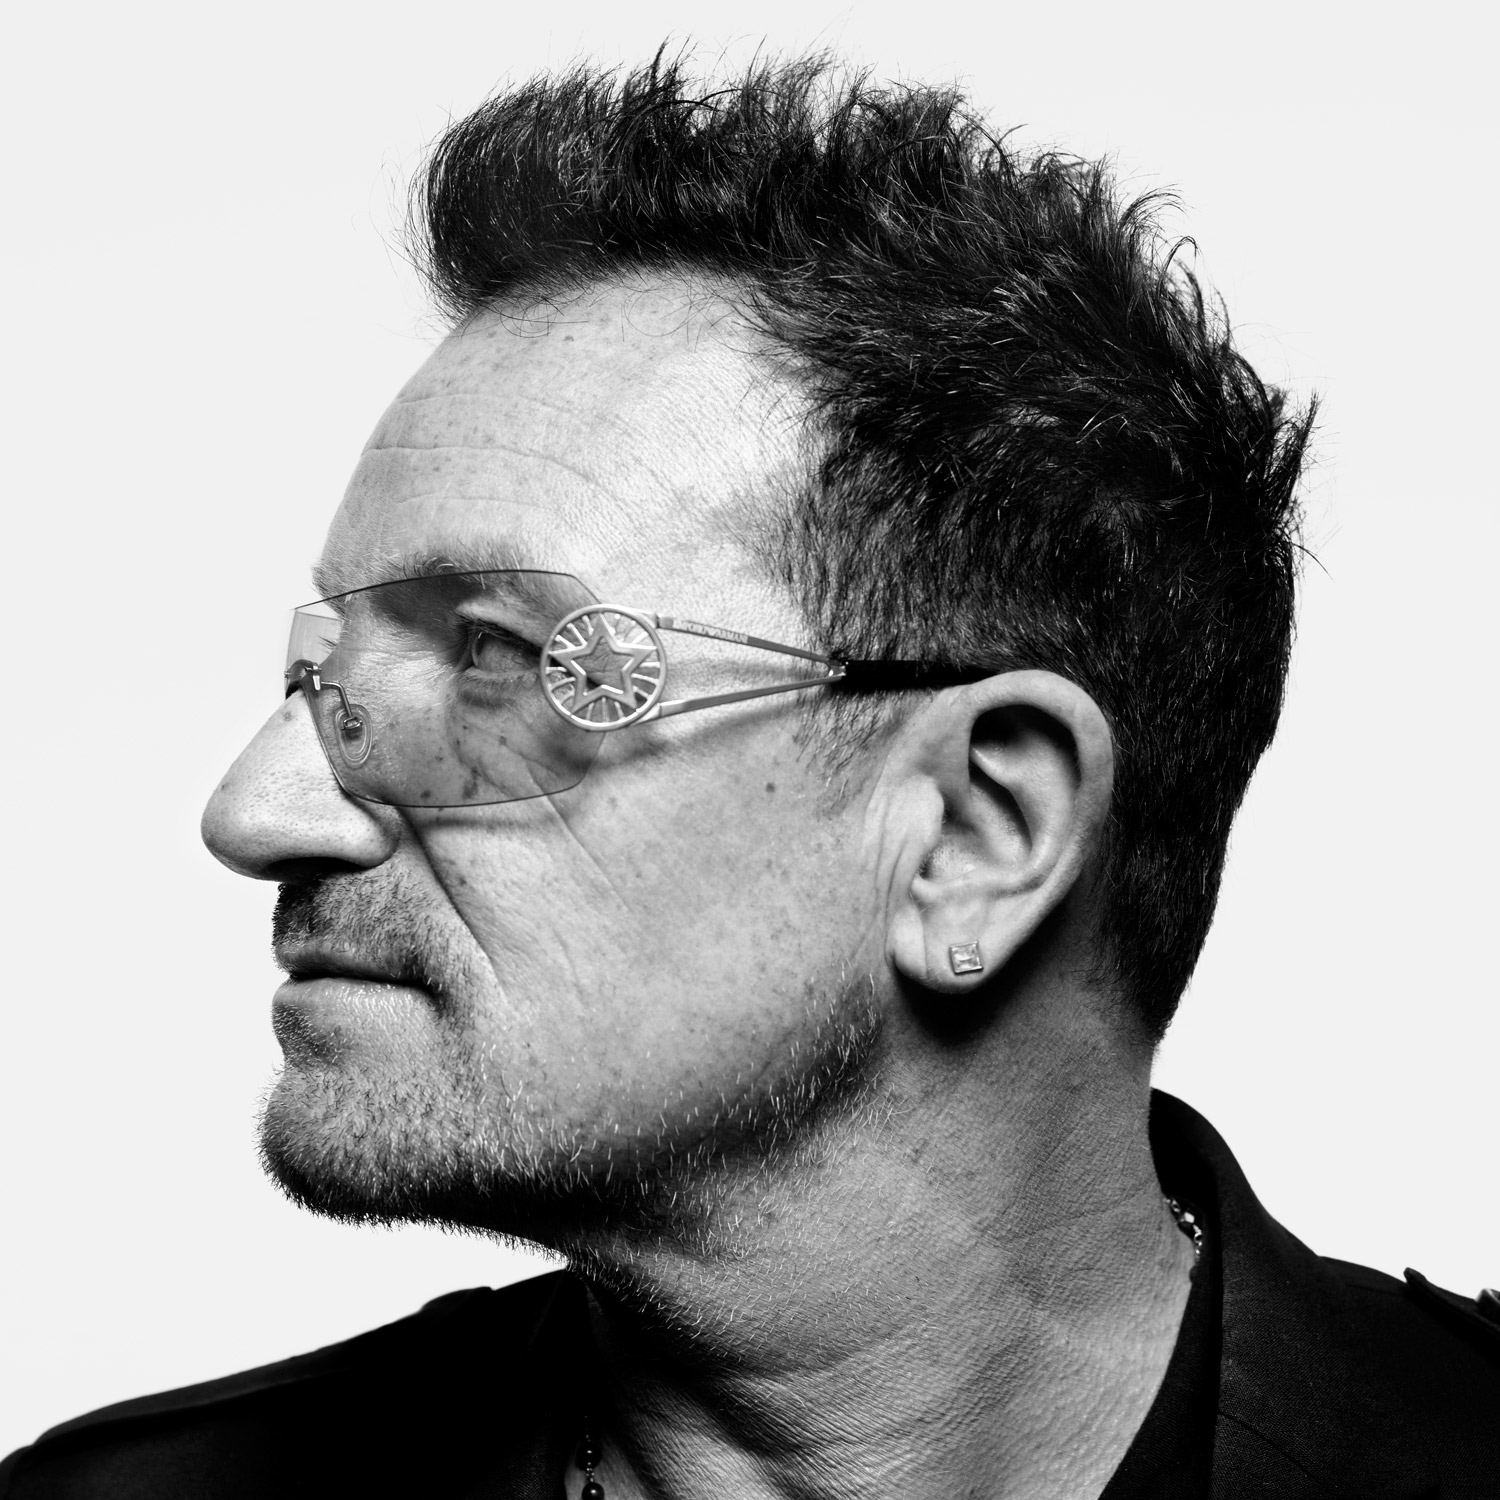 Bono, musician and activist. From  Q&A,  Dec. 12, 2011, issue.